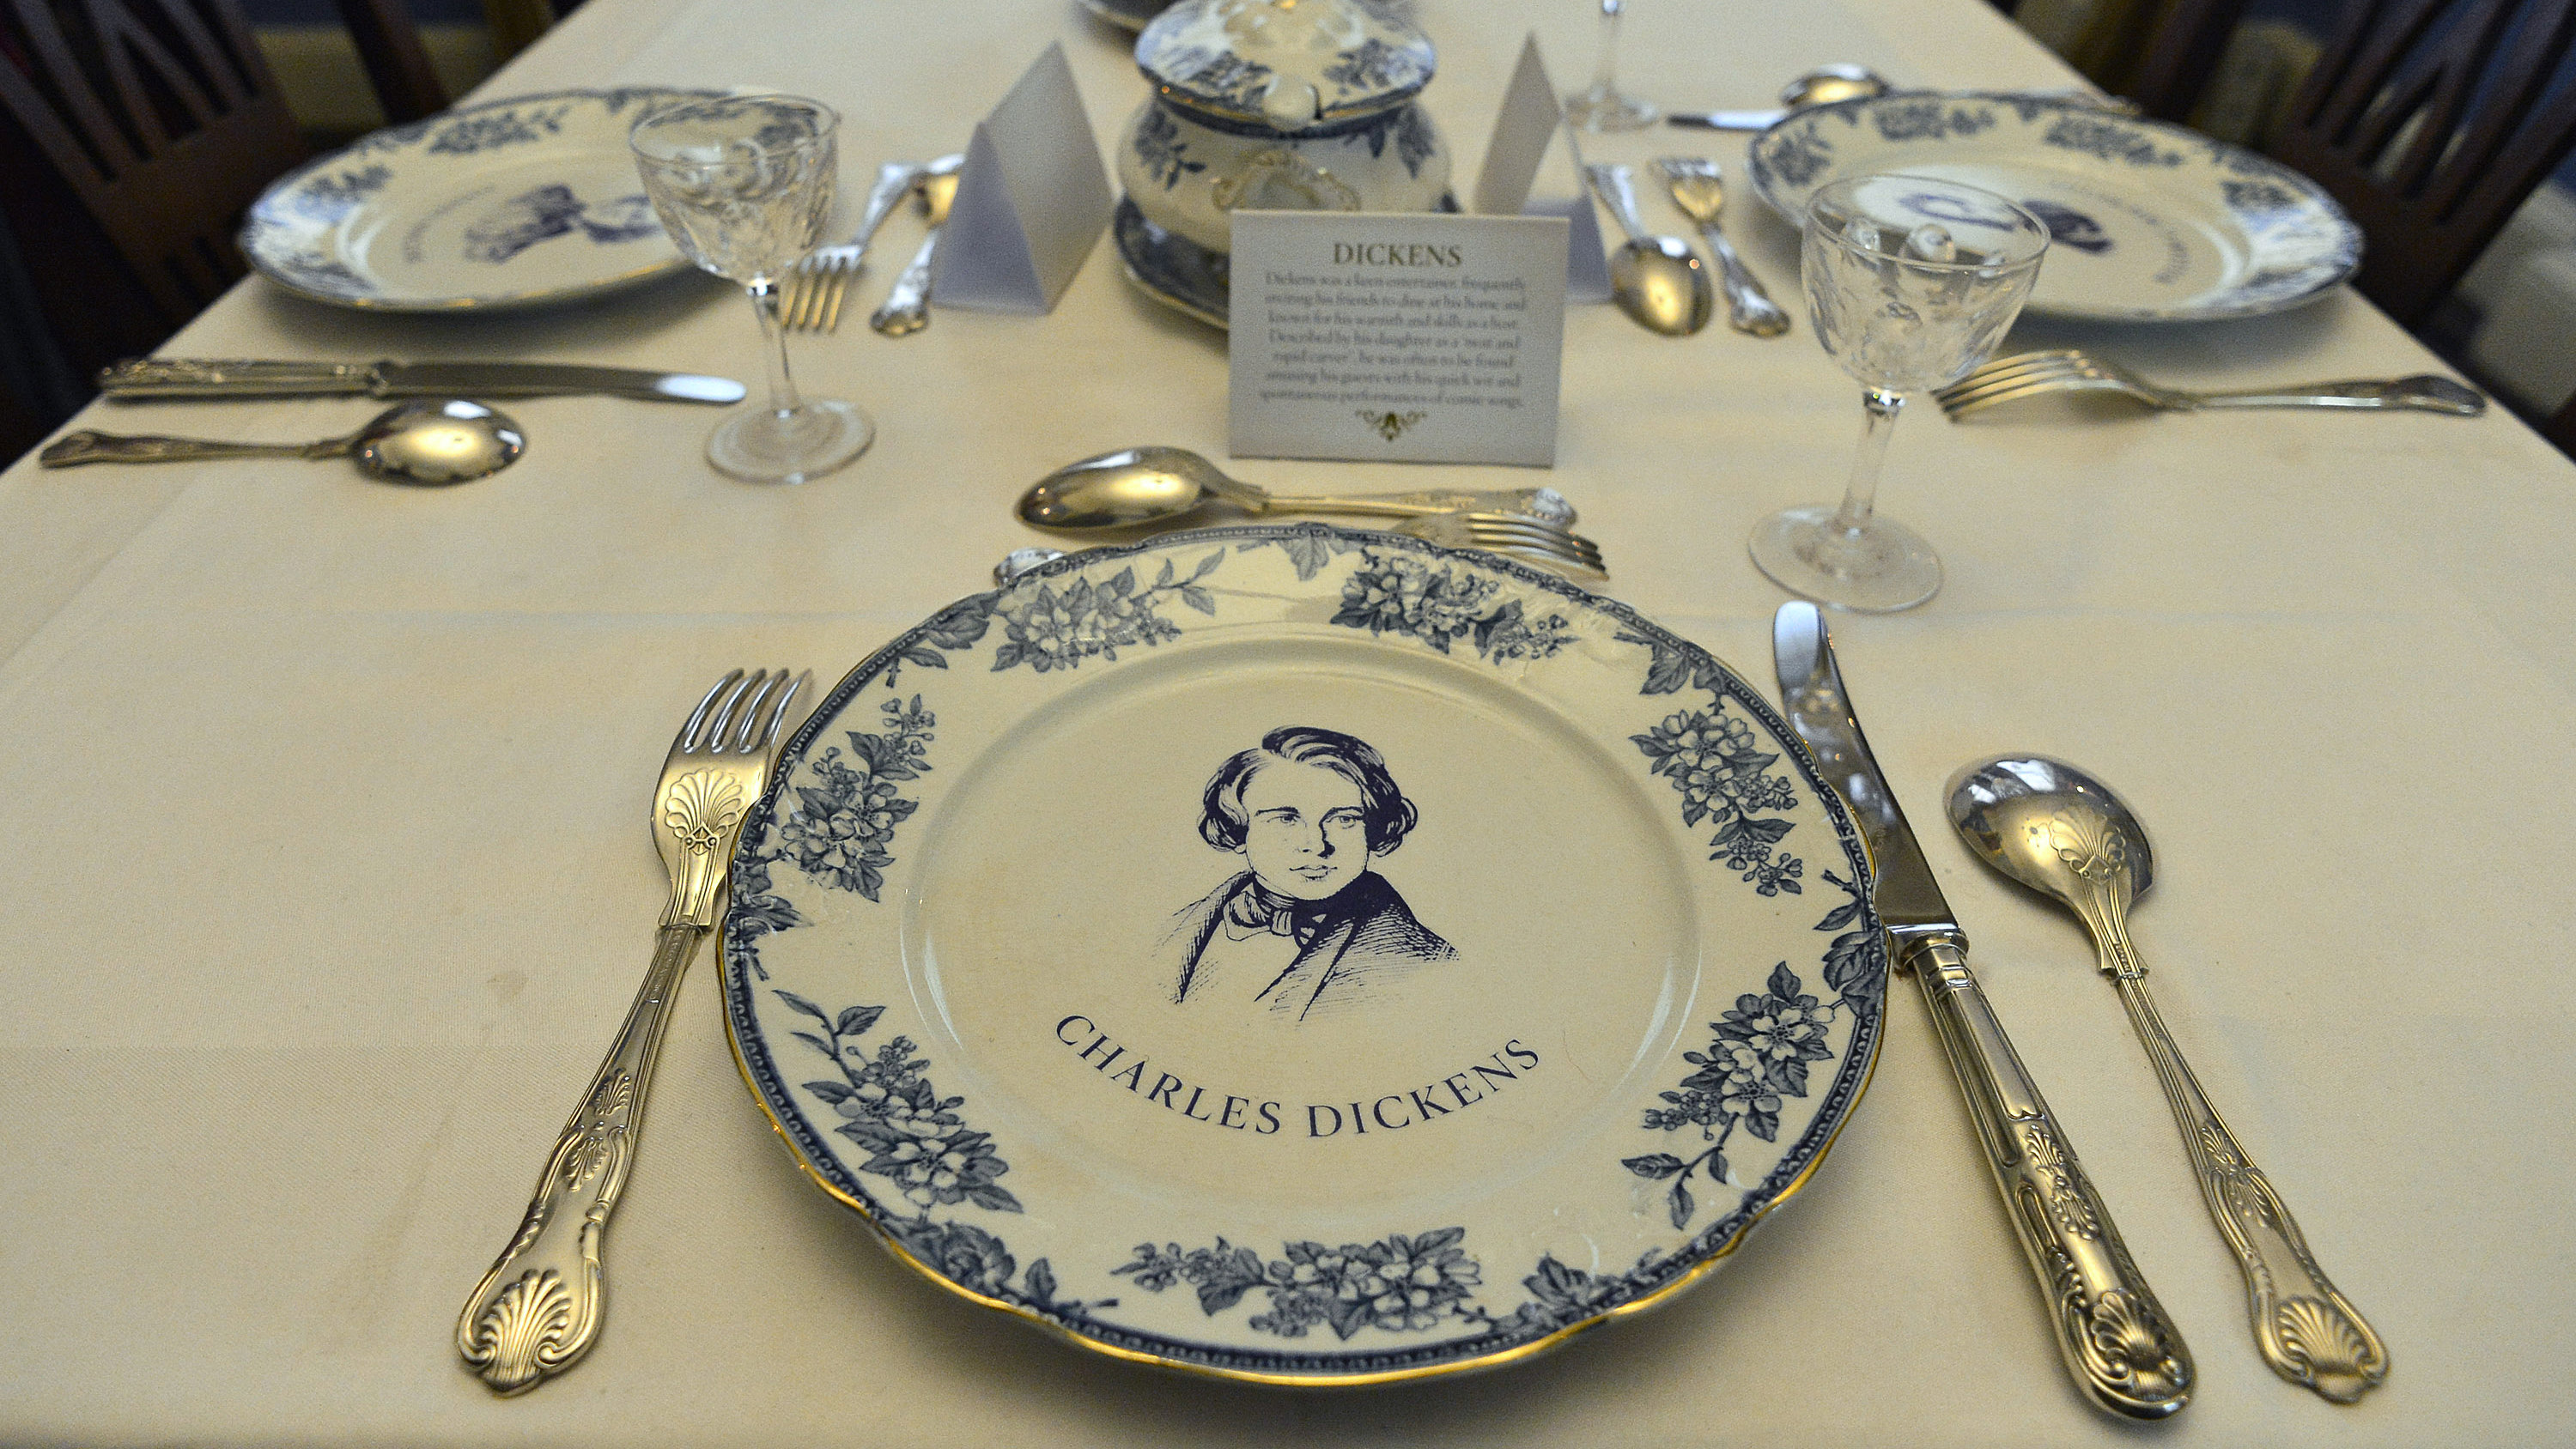 Dickens plate place setting